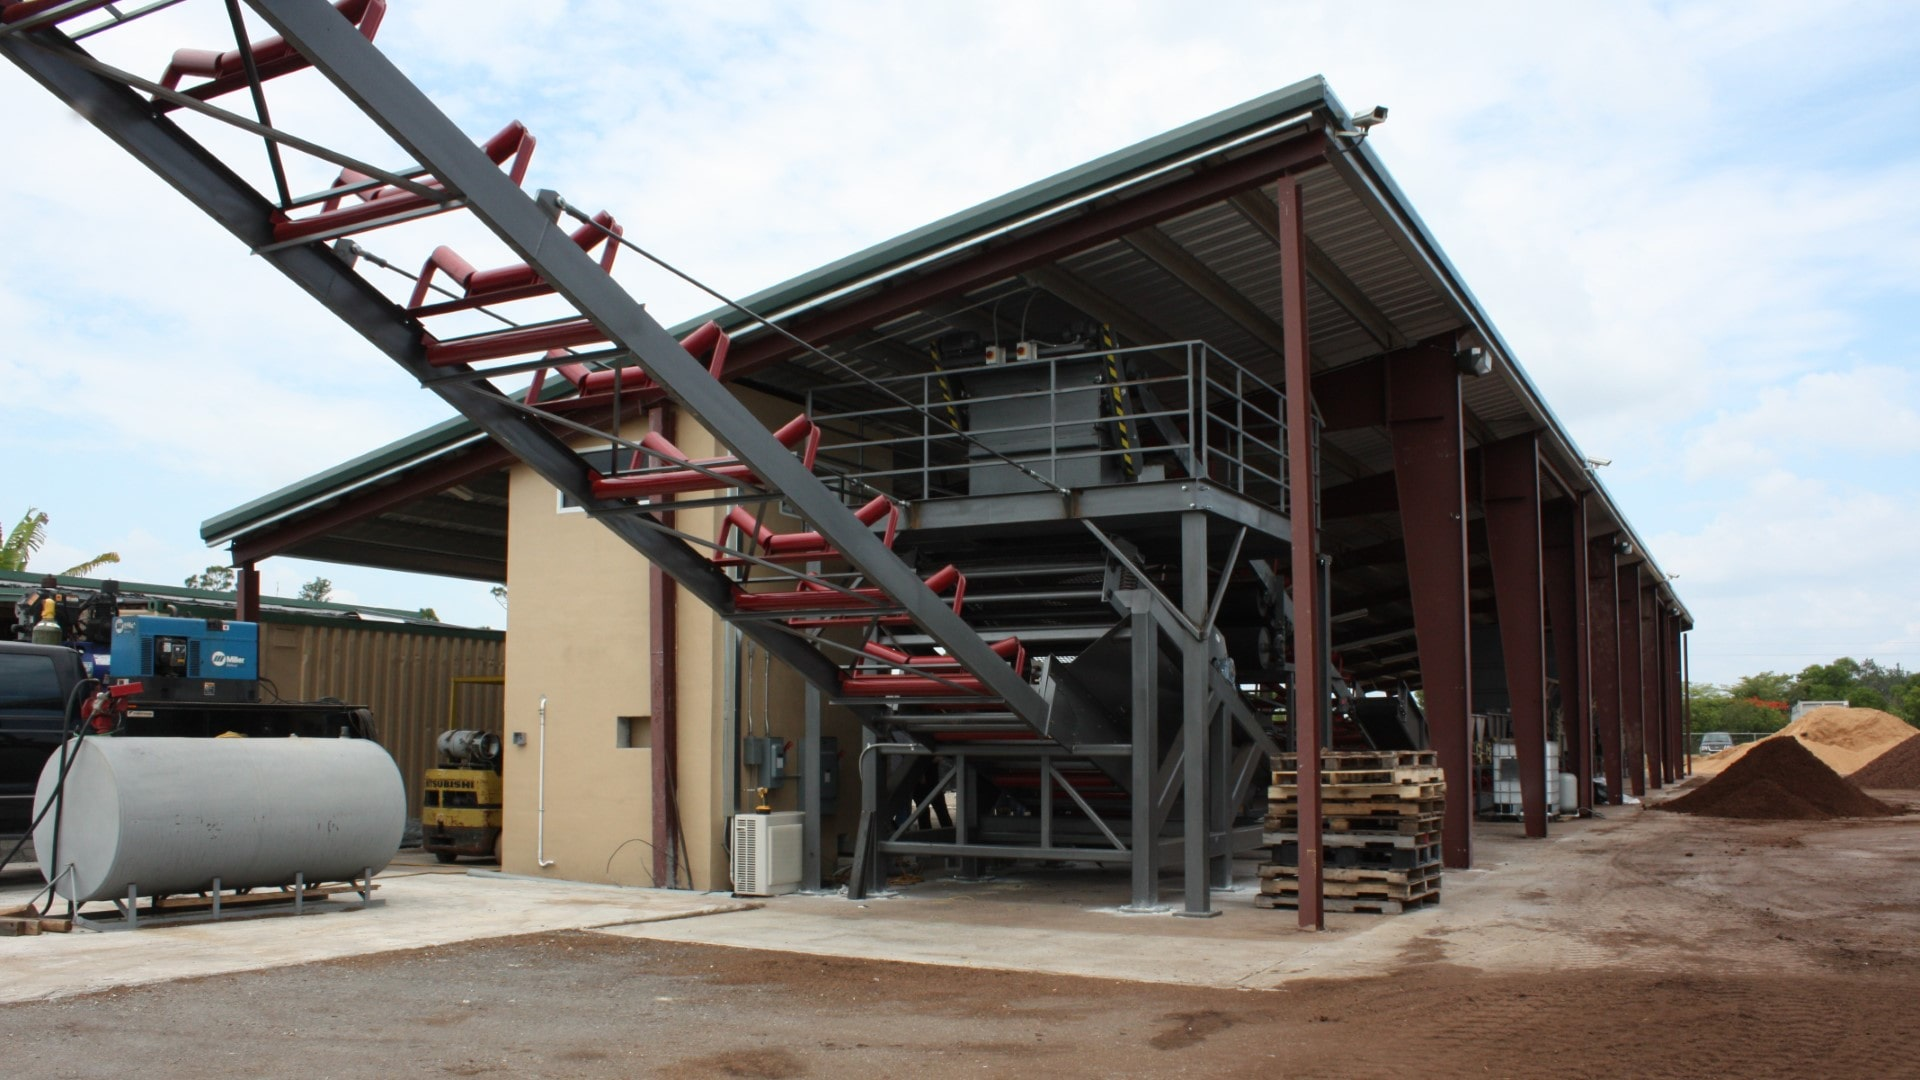 Single slope open roof only metal building protecting commercial composting machinery.